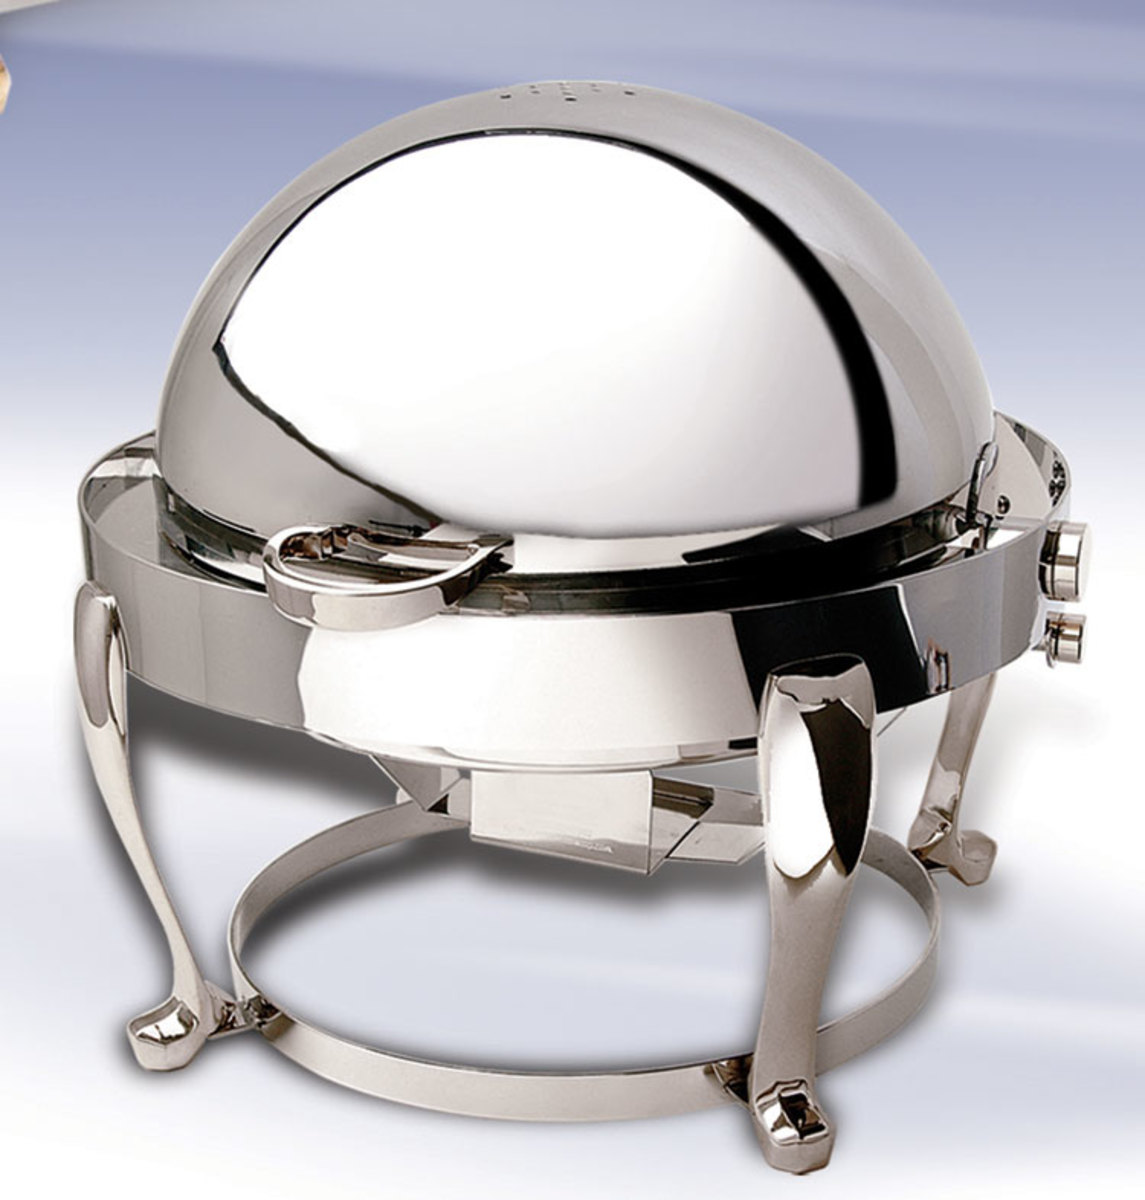 Do You Use Stainless Steel Chafing Dishes For Big Parties?